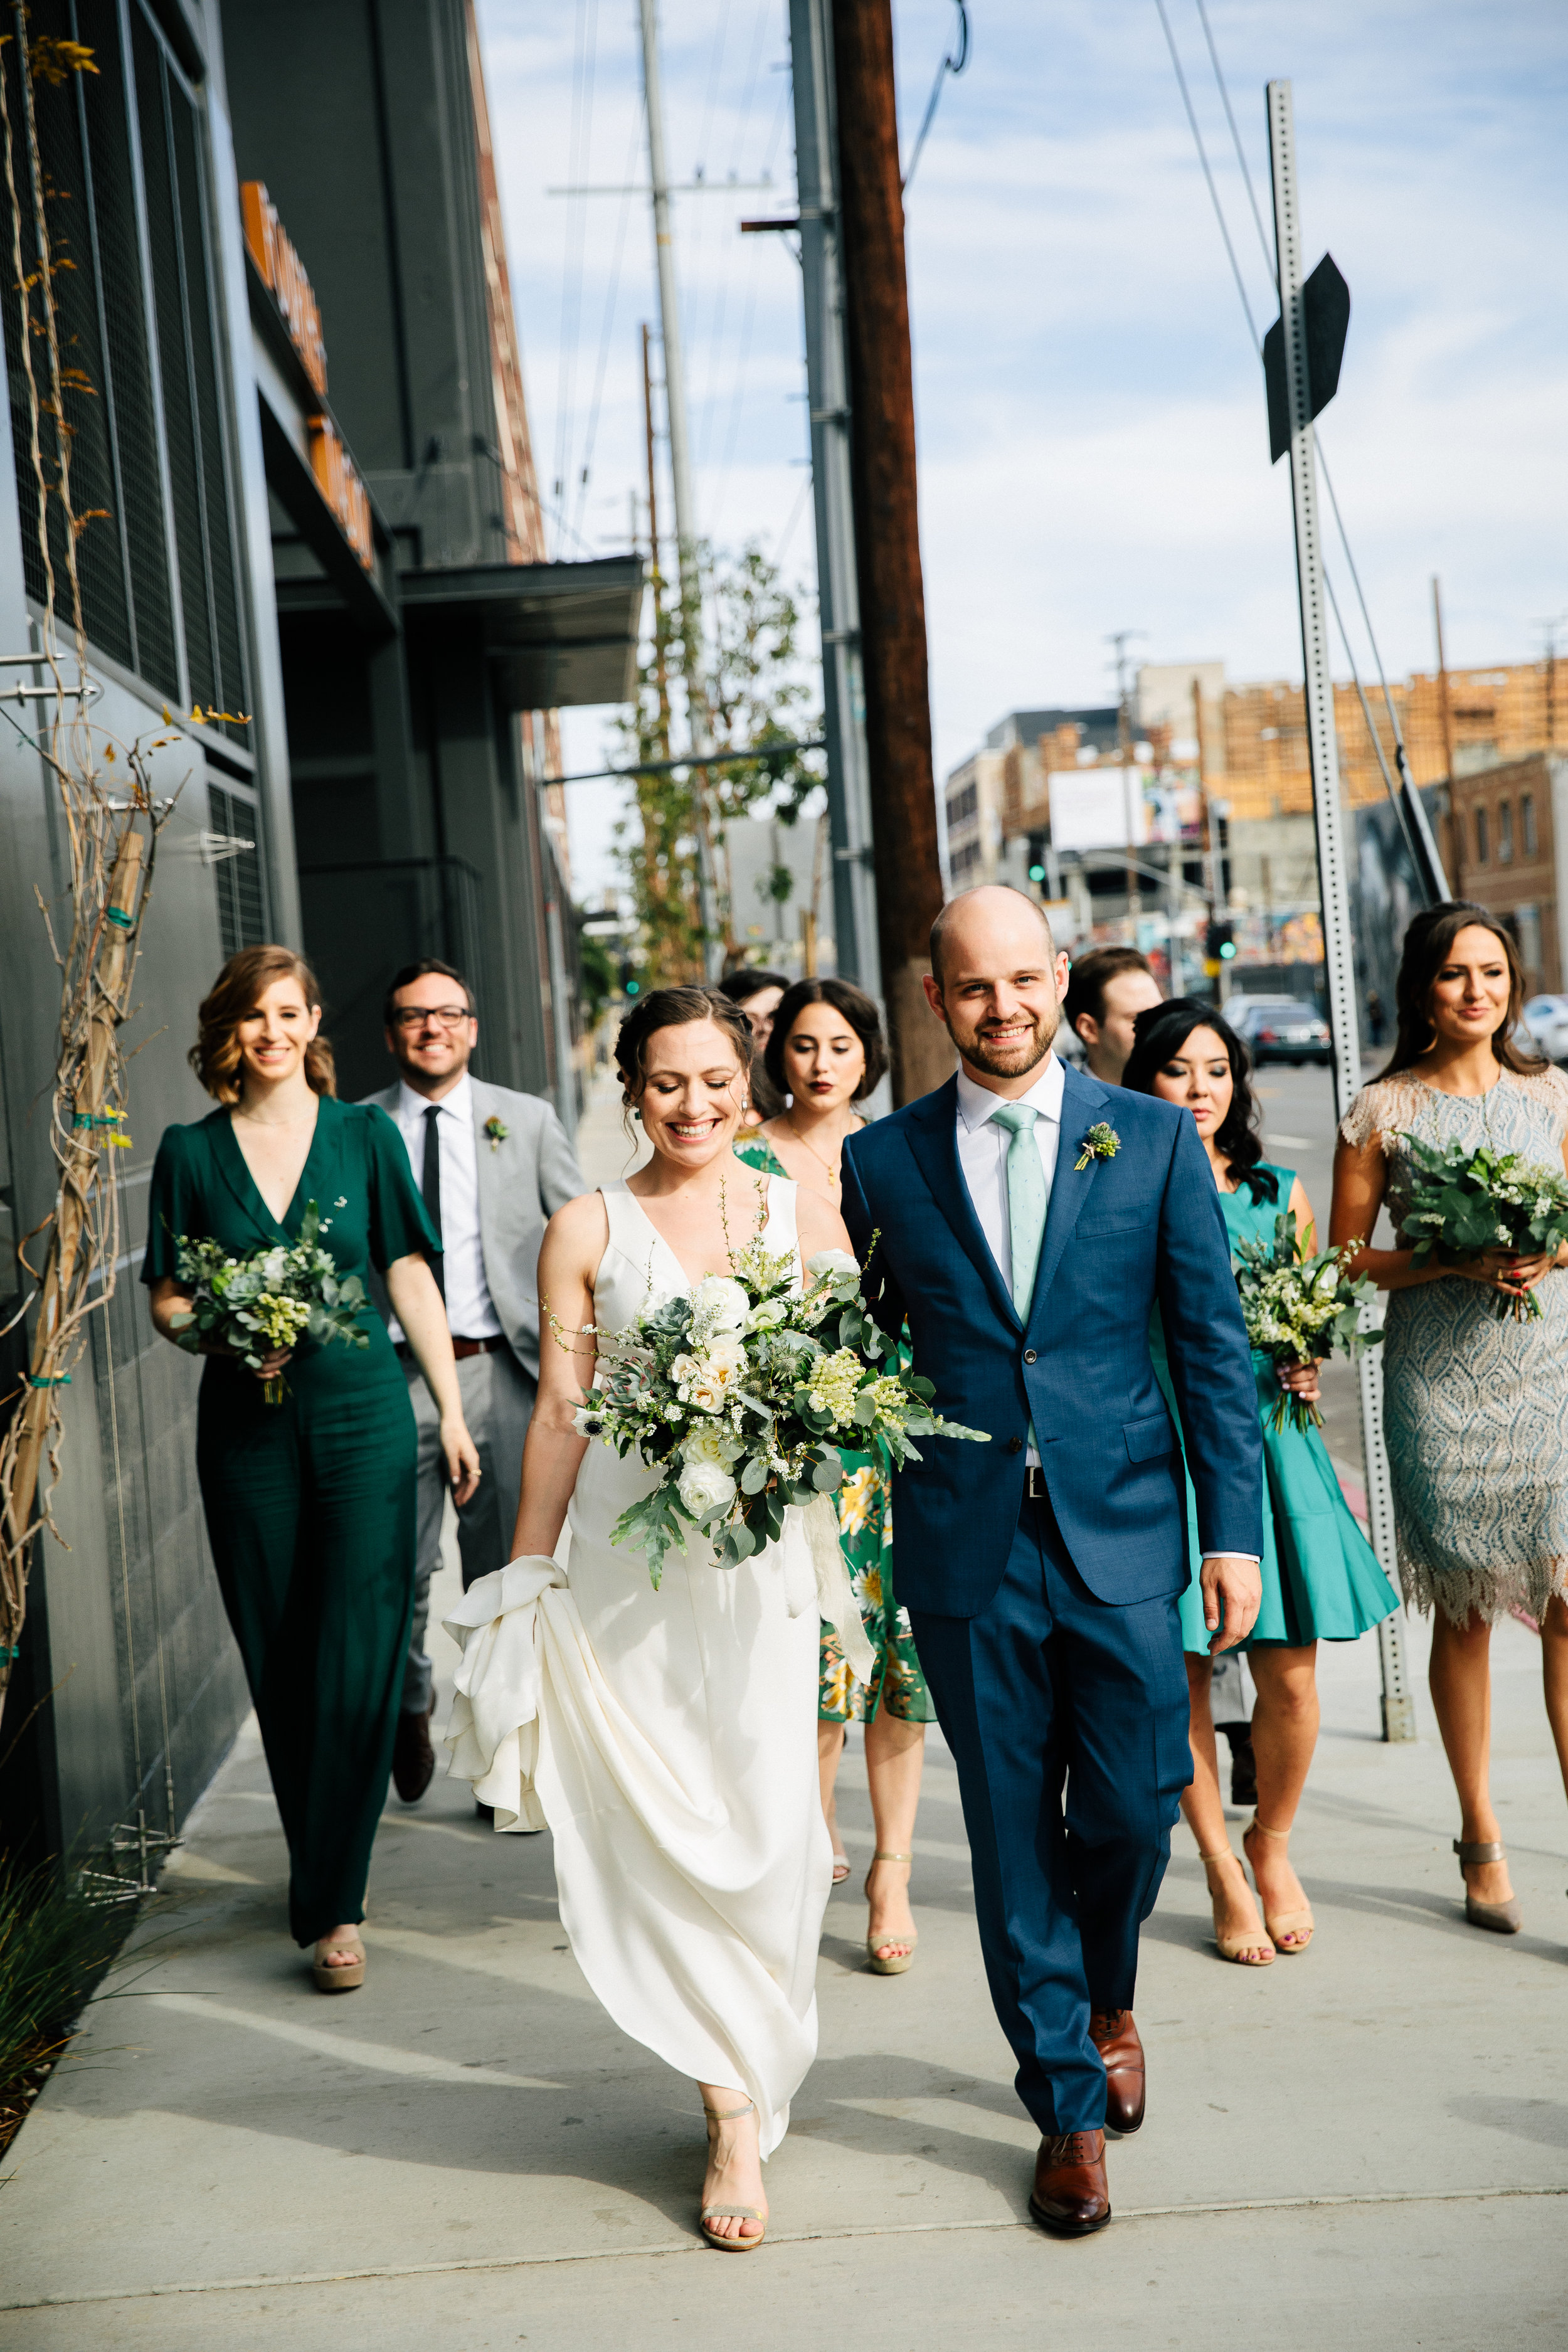 This DTLA wedding was inspired by Earth Day, it's vibe was natural and minimal. The color palate is blue, green, rusty pinks and oranges. The LA bride had a custom wedding gown that was simply elegant. Rental furniture with velvet, wood matched the industrial #greenhouse of Millwick Wedding Venue in Los Angeles, CA. The florals were potted plants so they could be replanted post wedding. #JAE #janealexandraevents #dtlaweddingvenue #weddingplanning #losangeleswedding